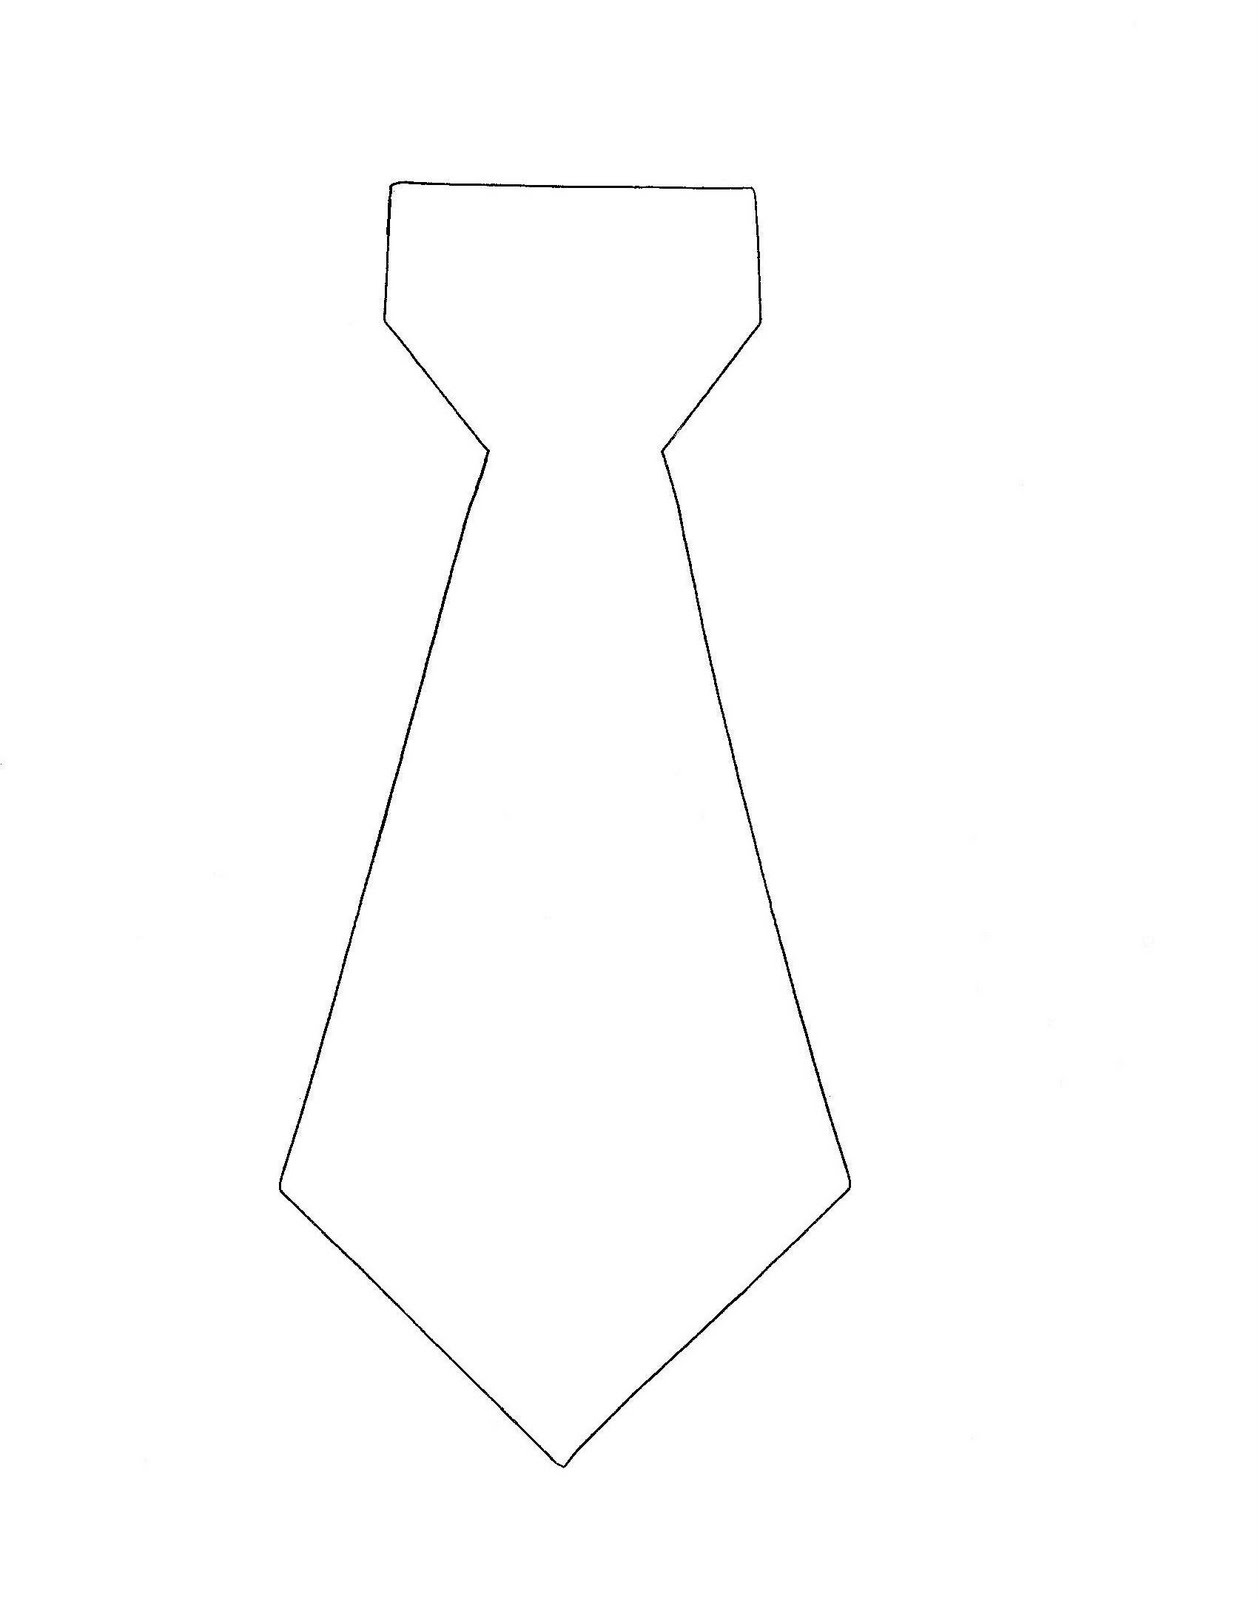 11 Images Of Free Printable Tie Template | Somaek - Free Printable Tie Template